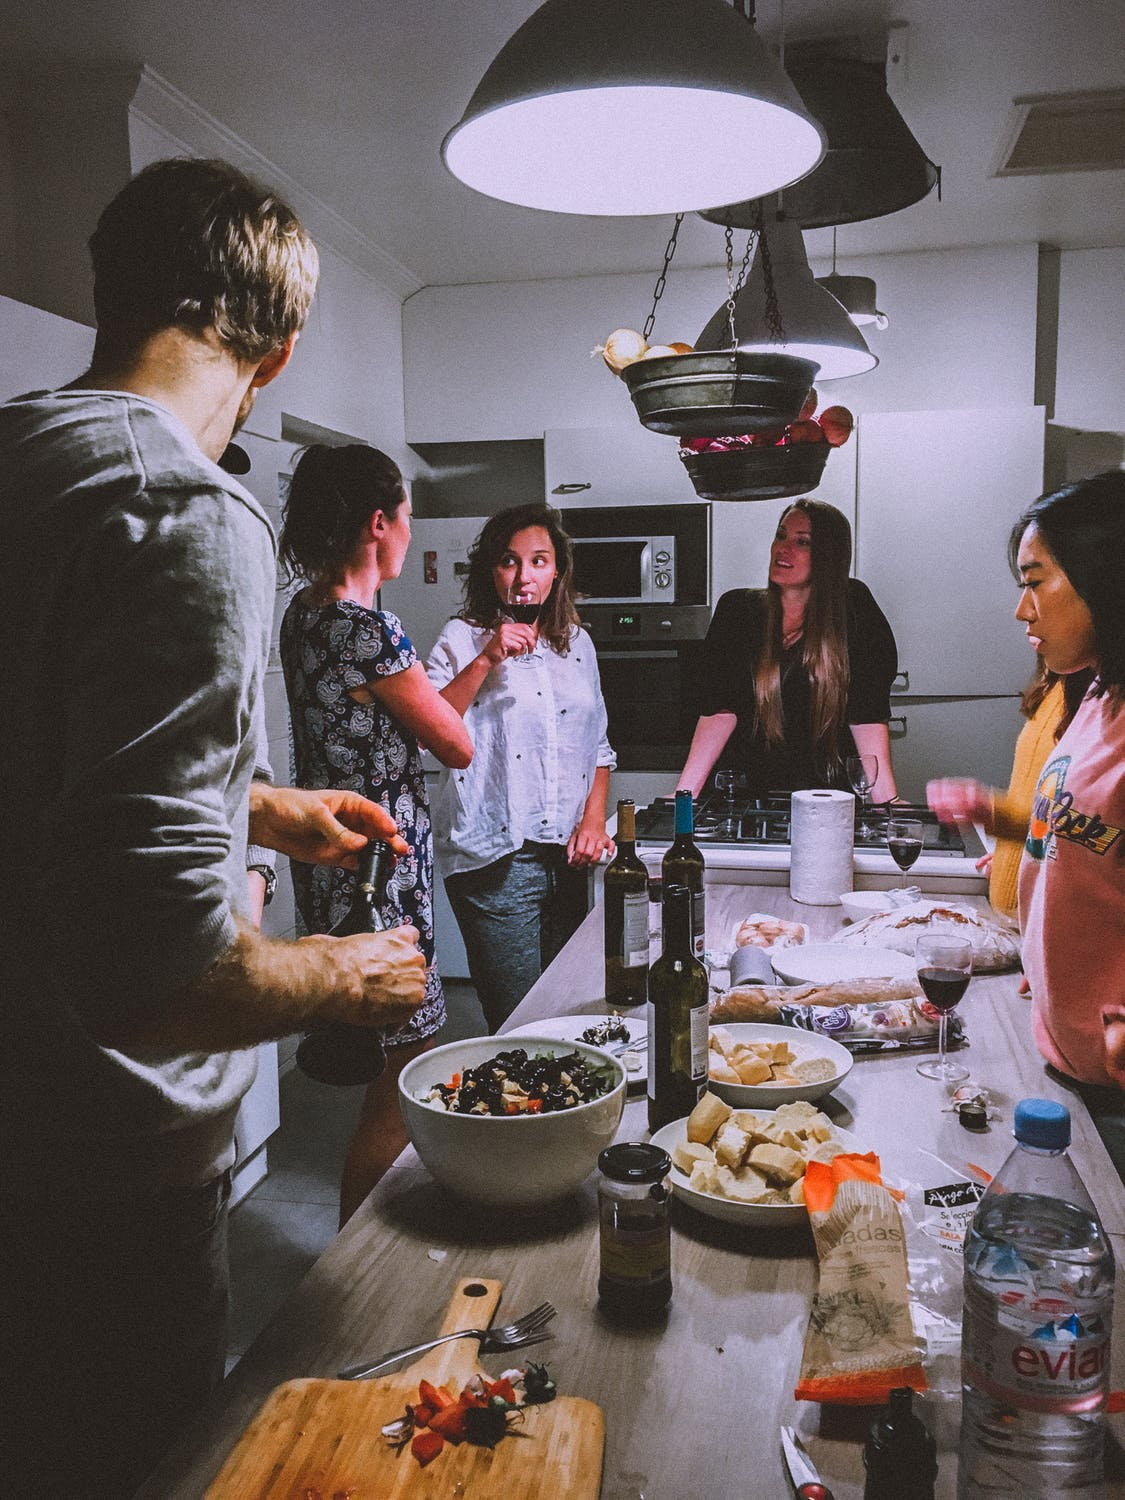 Group of friends stand around a kitchen island drinking wine and eating snacks